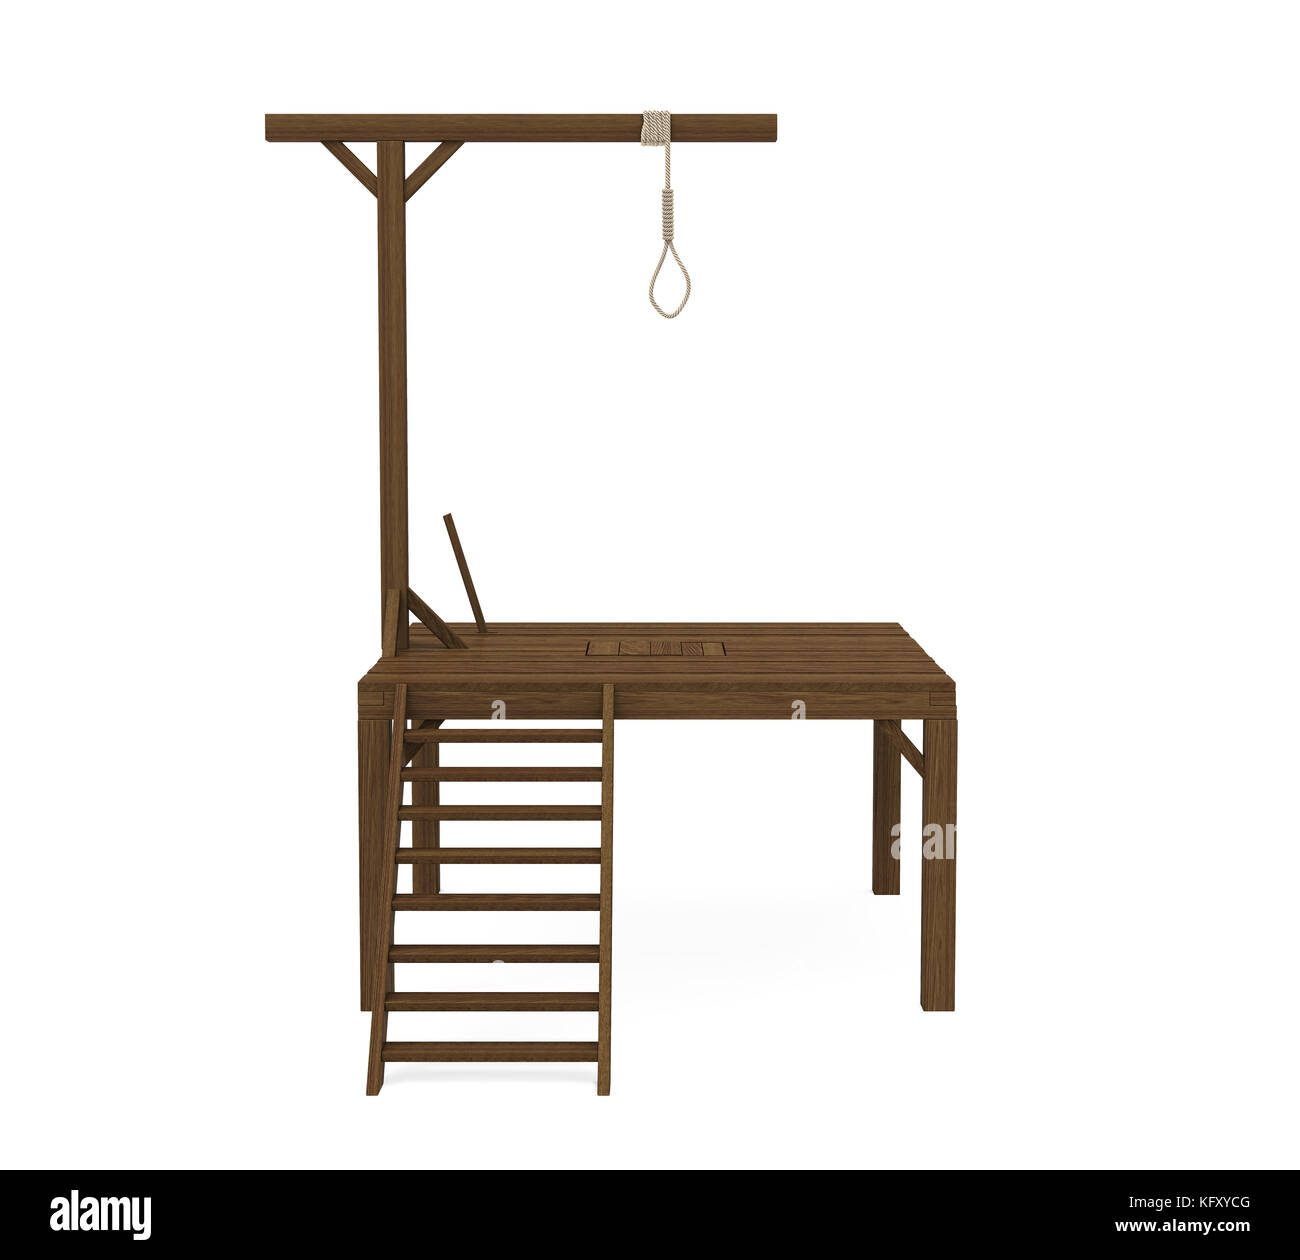 Gallows Isolated Stock Photo